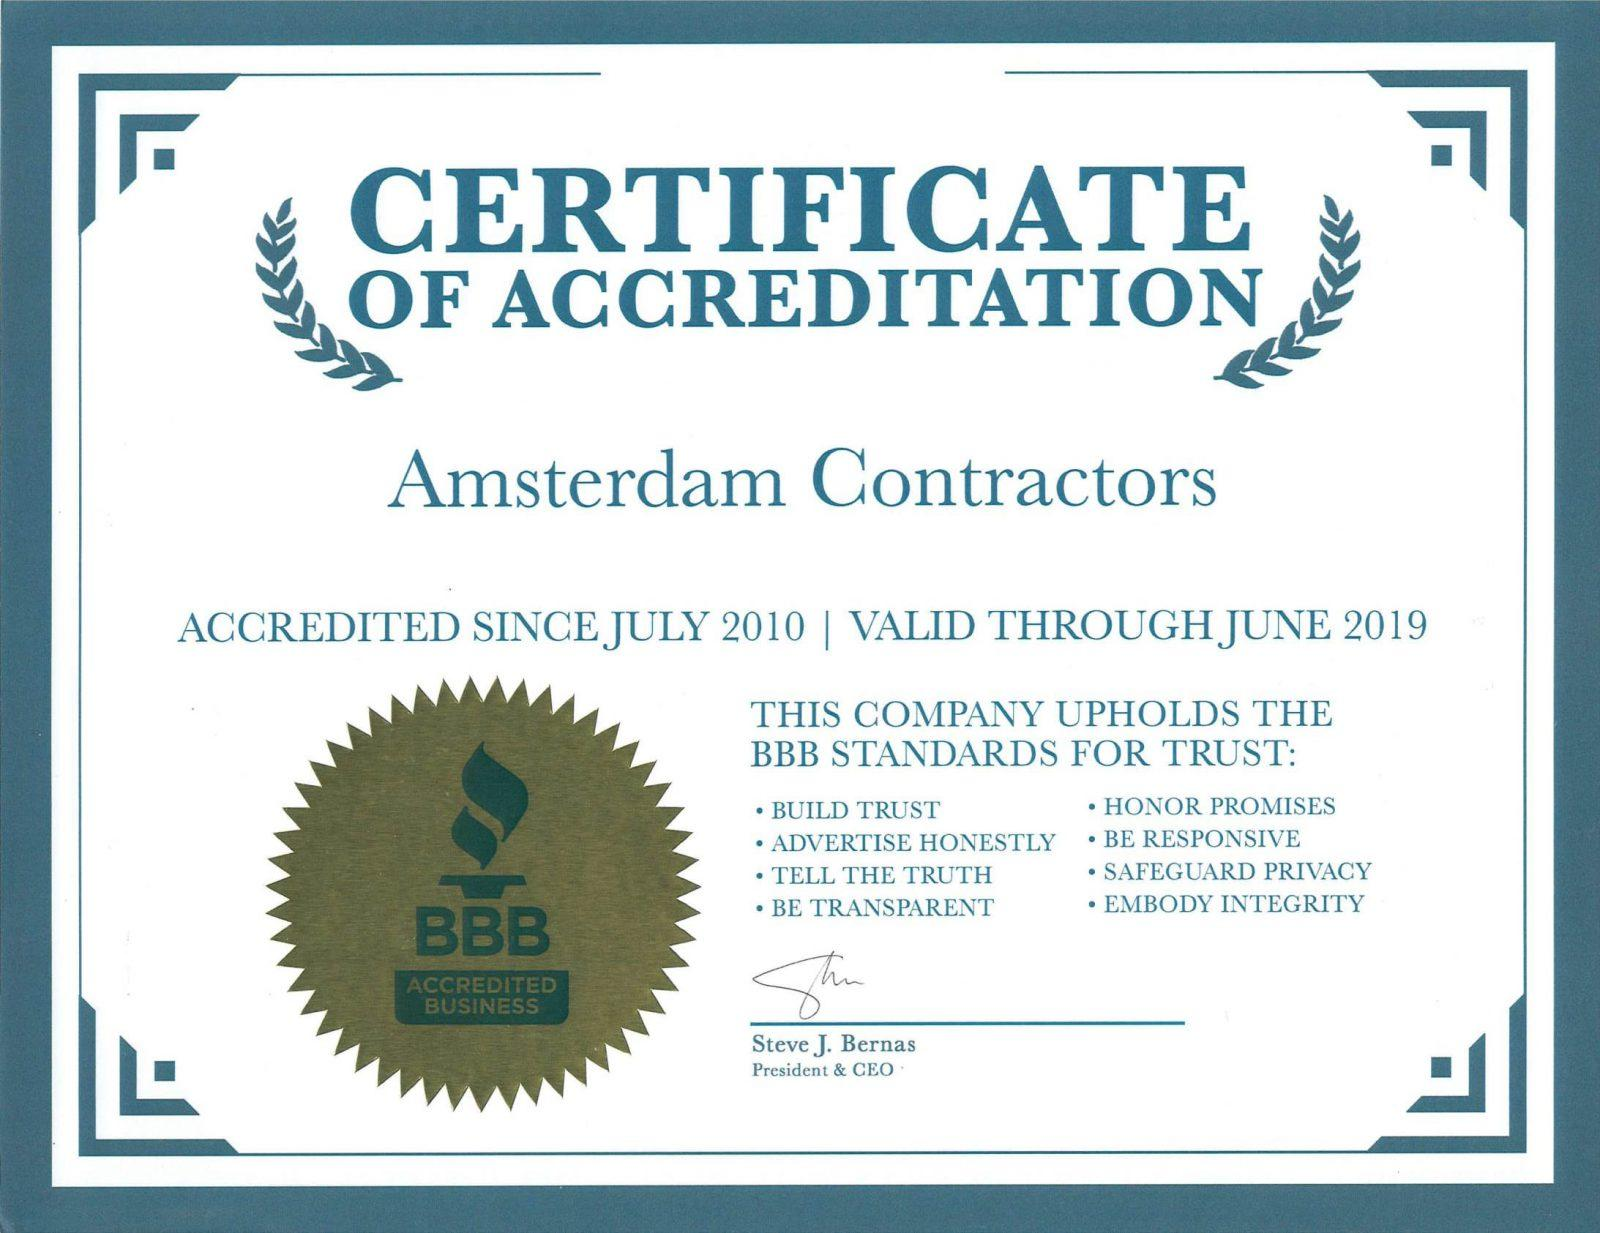 BBB-Accreditation-Certificate-Amsterdam-Contractors